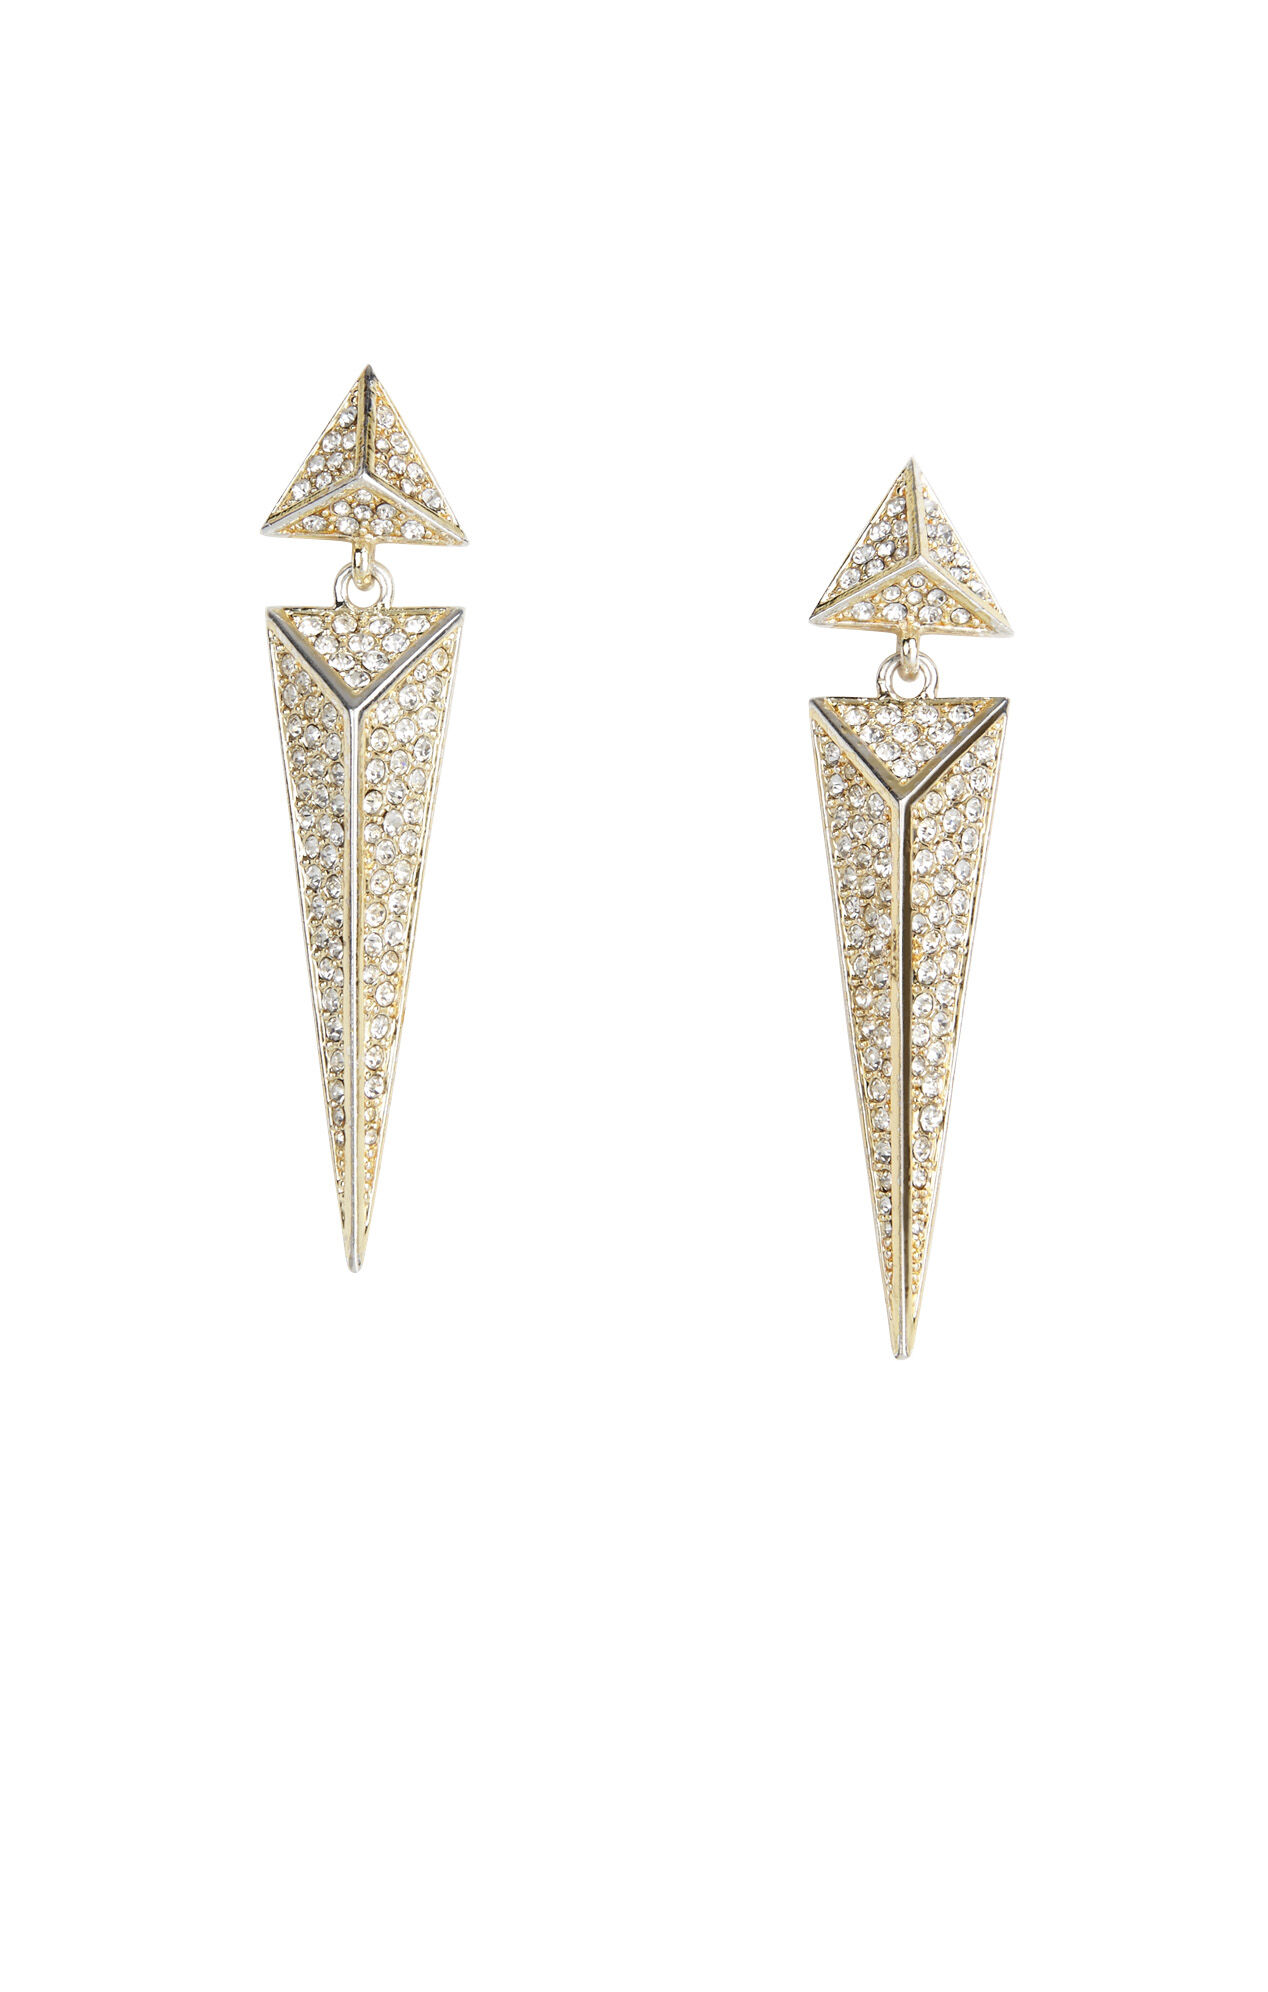 Pave Pyramid Earrings